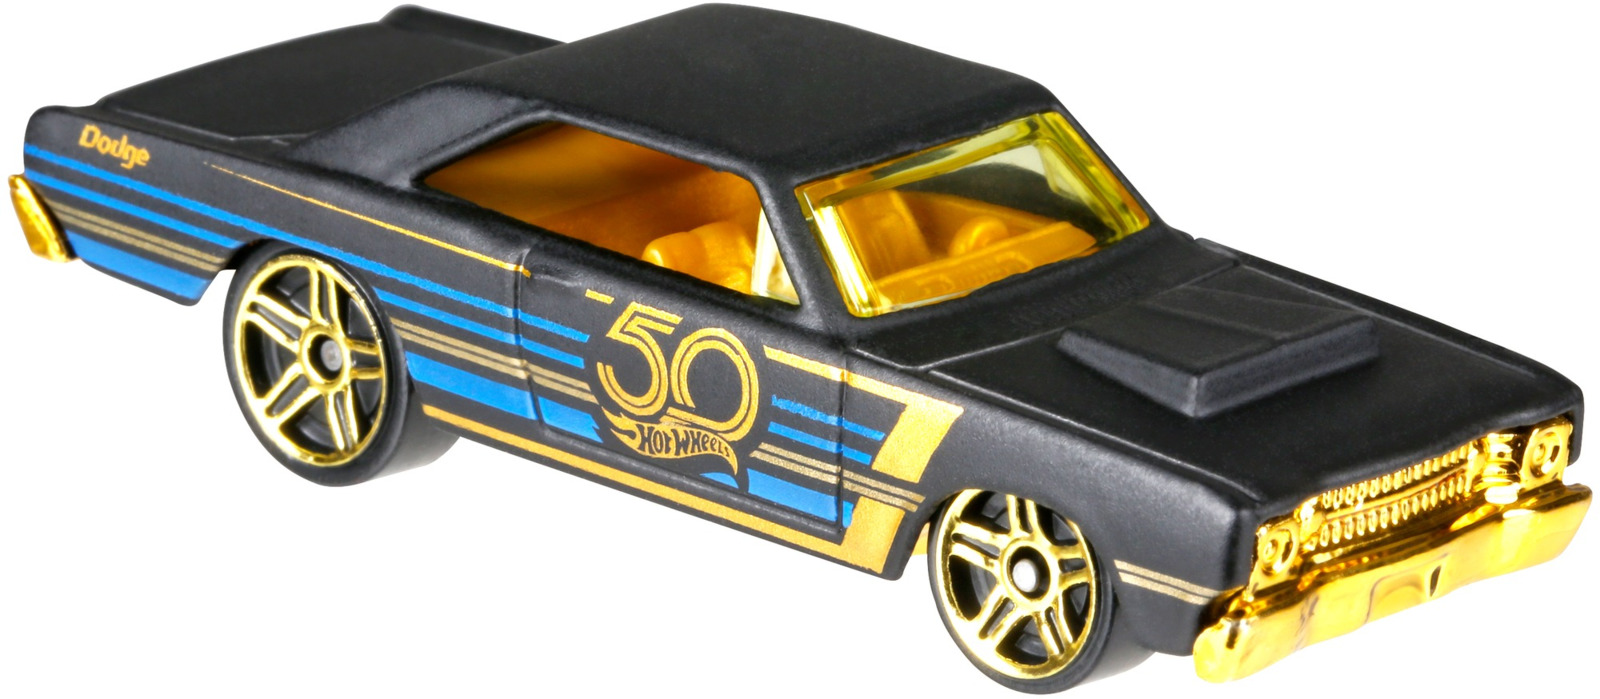 Hot Wheels Трековая машинка '68 Dodge Dart hot 80m 262ft mini digital laser distance meter range finder measure diastimeter hot